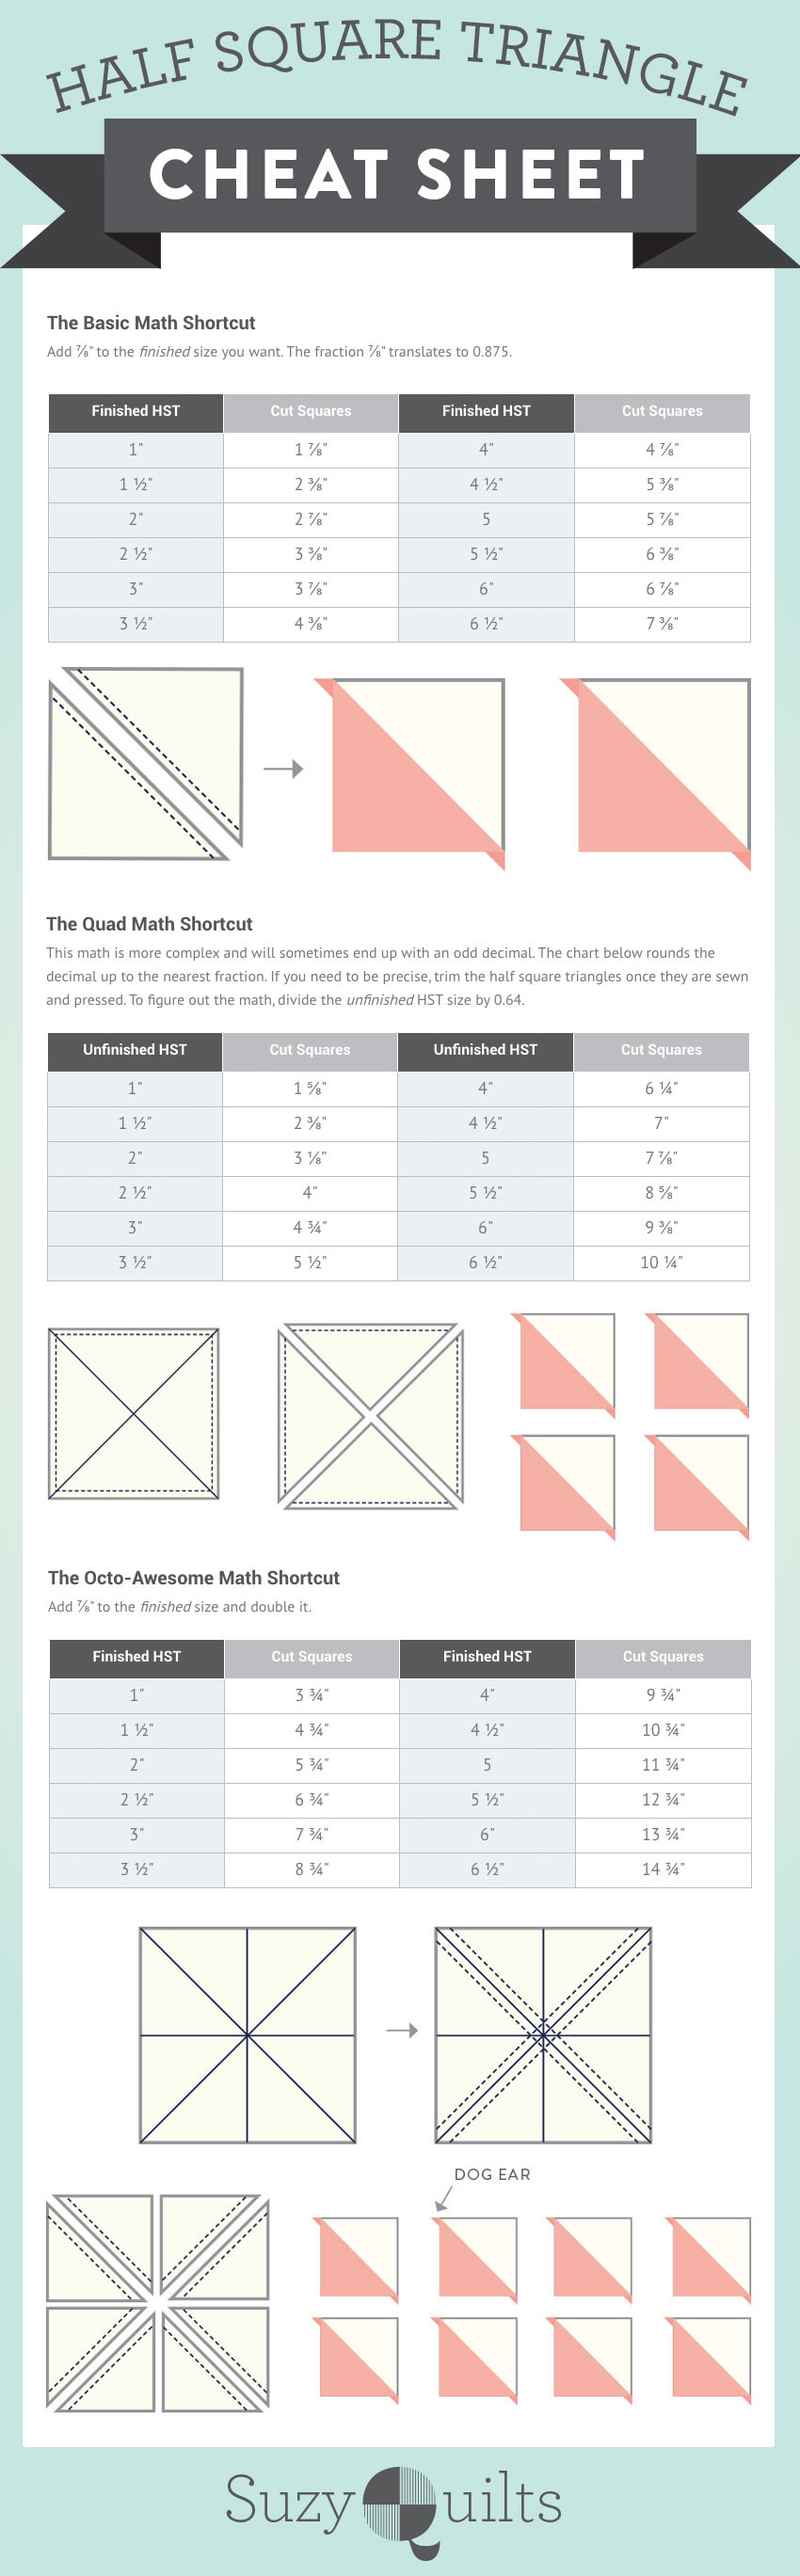 Half-Square-Triangle-Cheat-Sheet